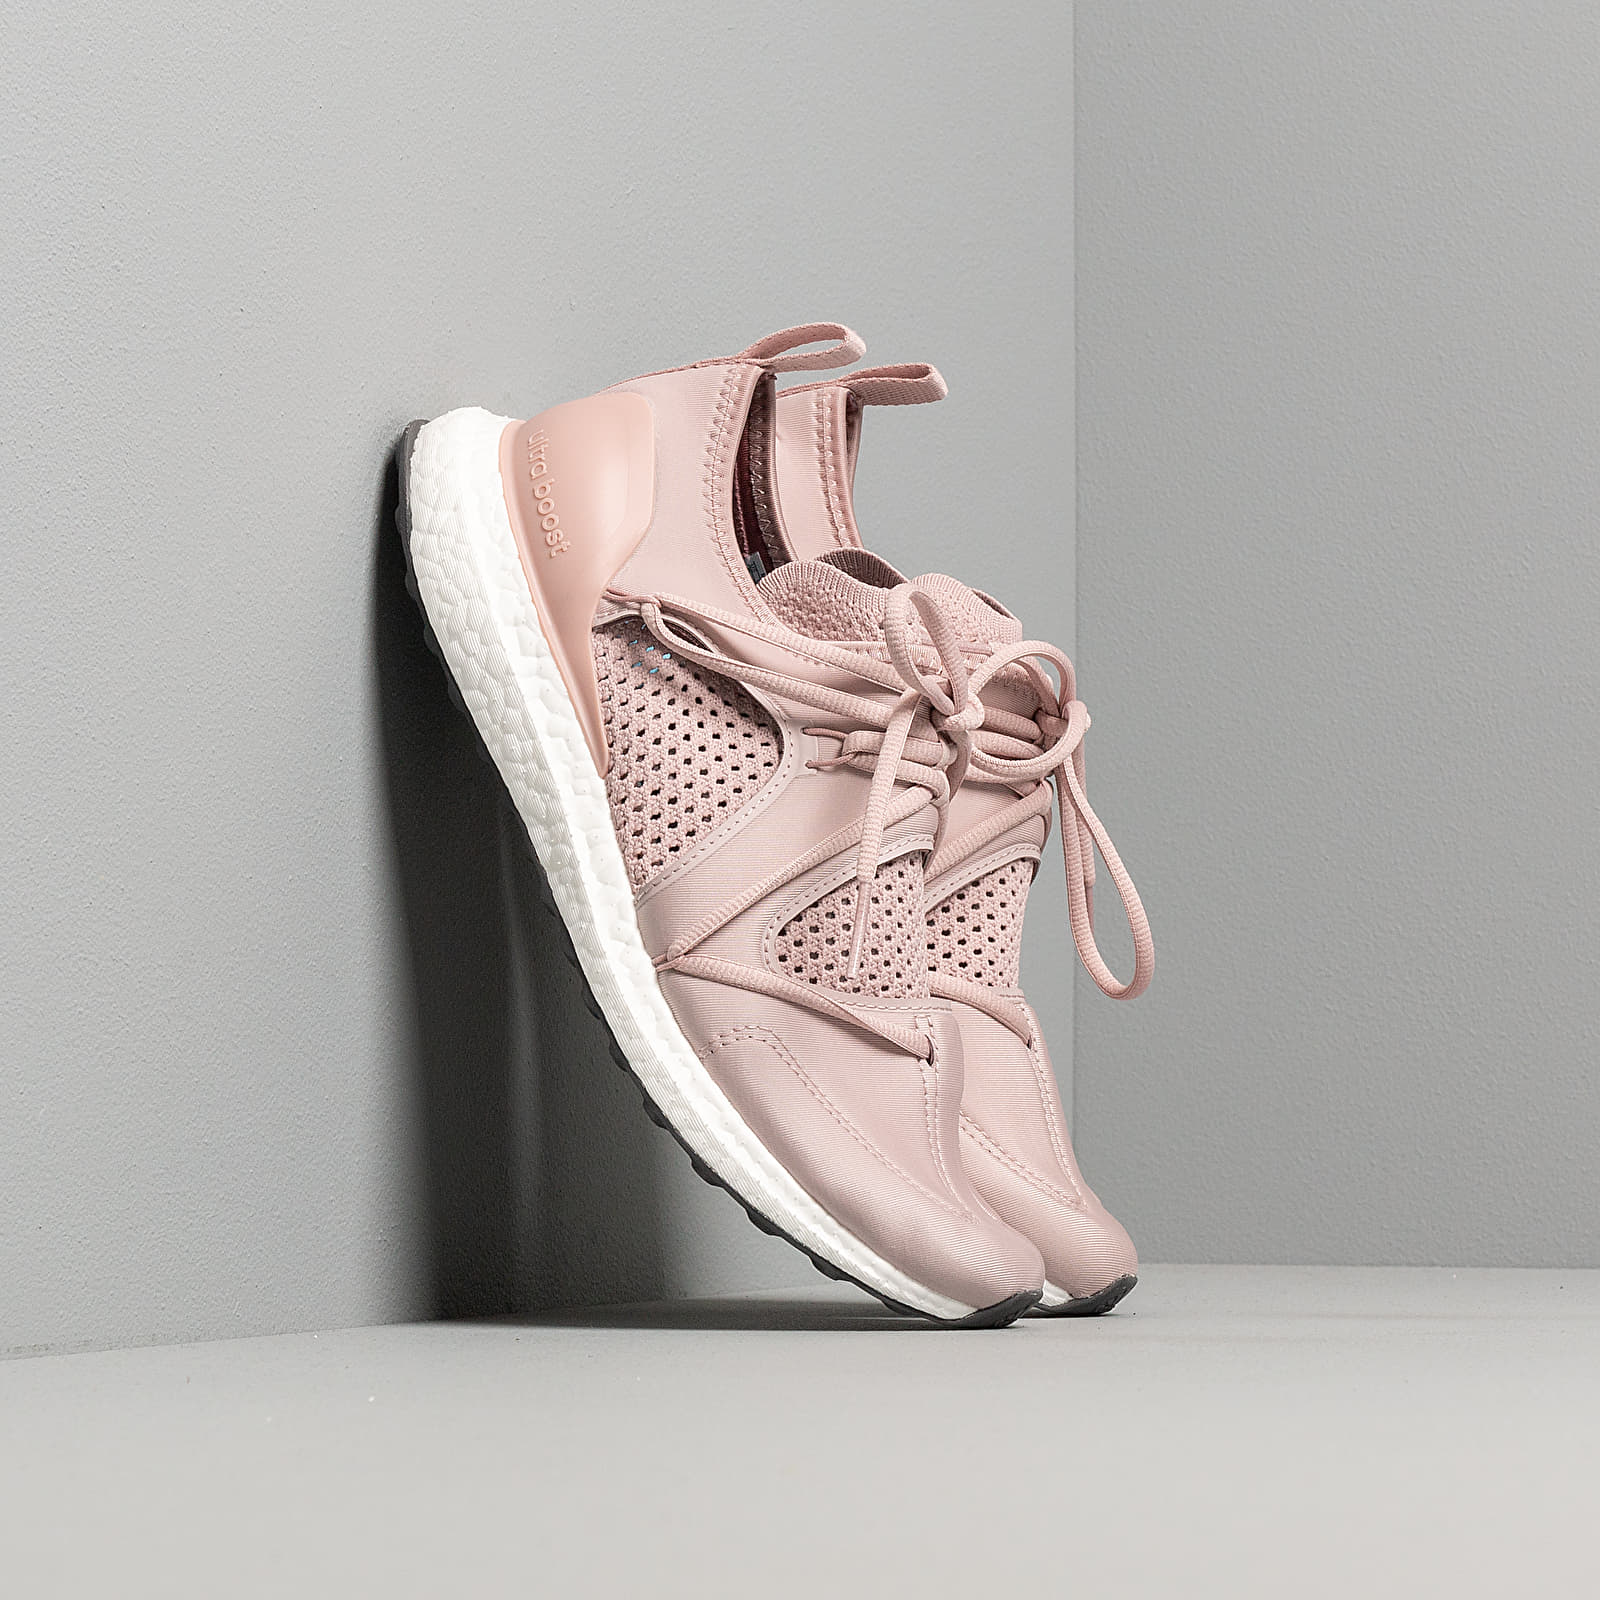 adidas x Stella McCartney UltraBOOST T